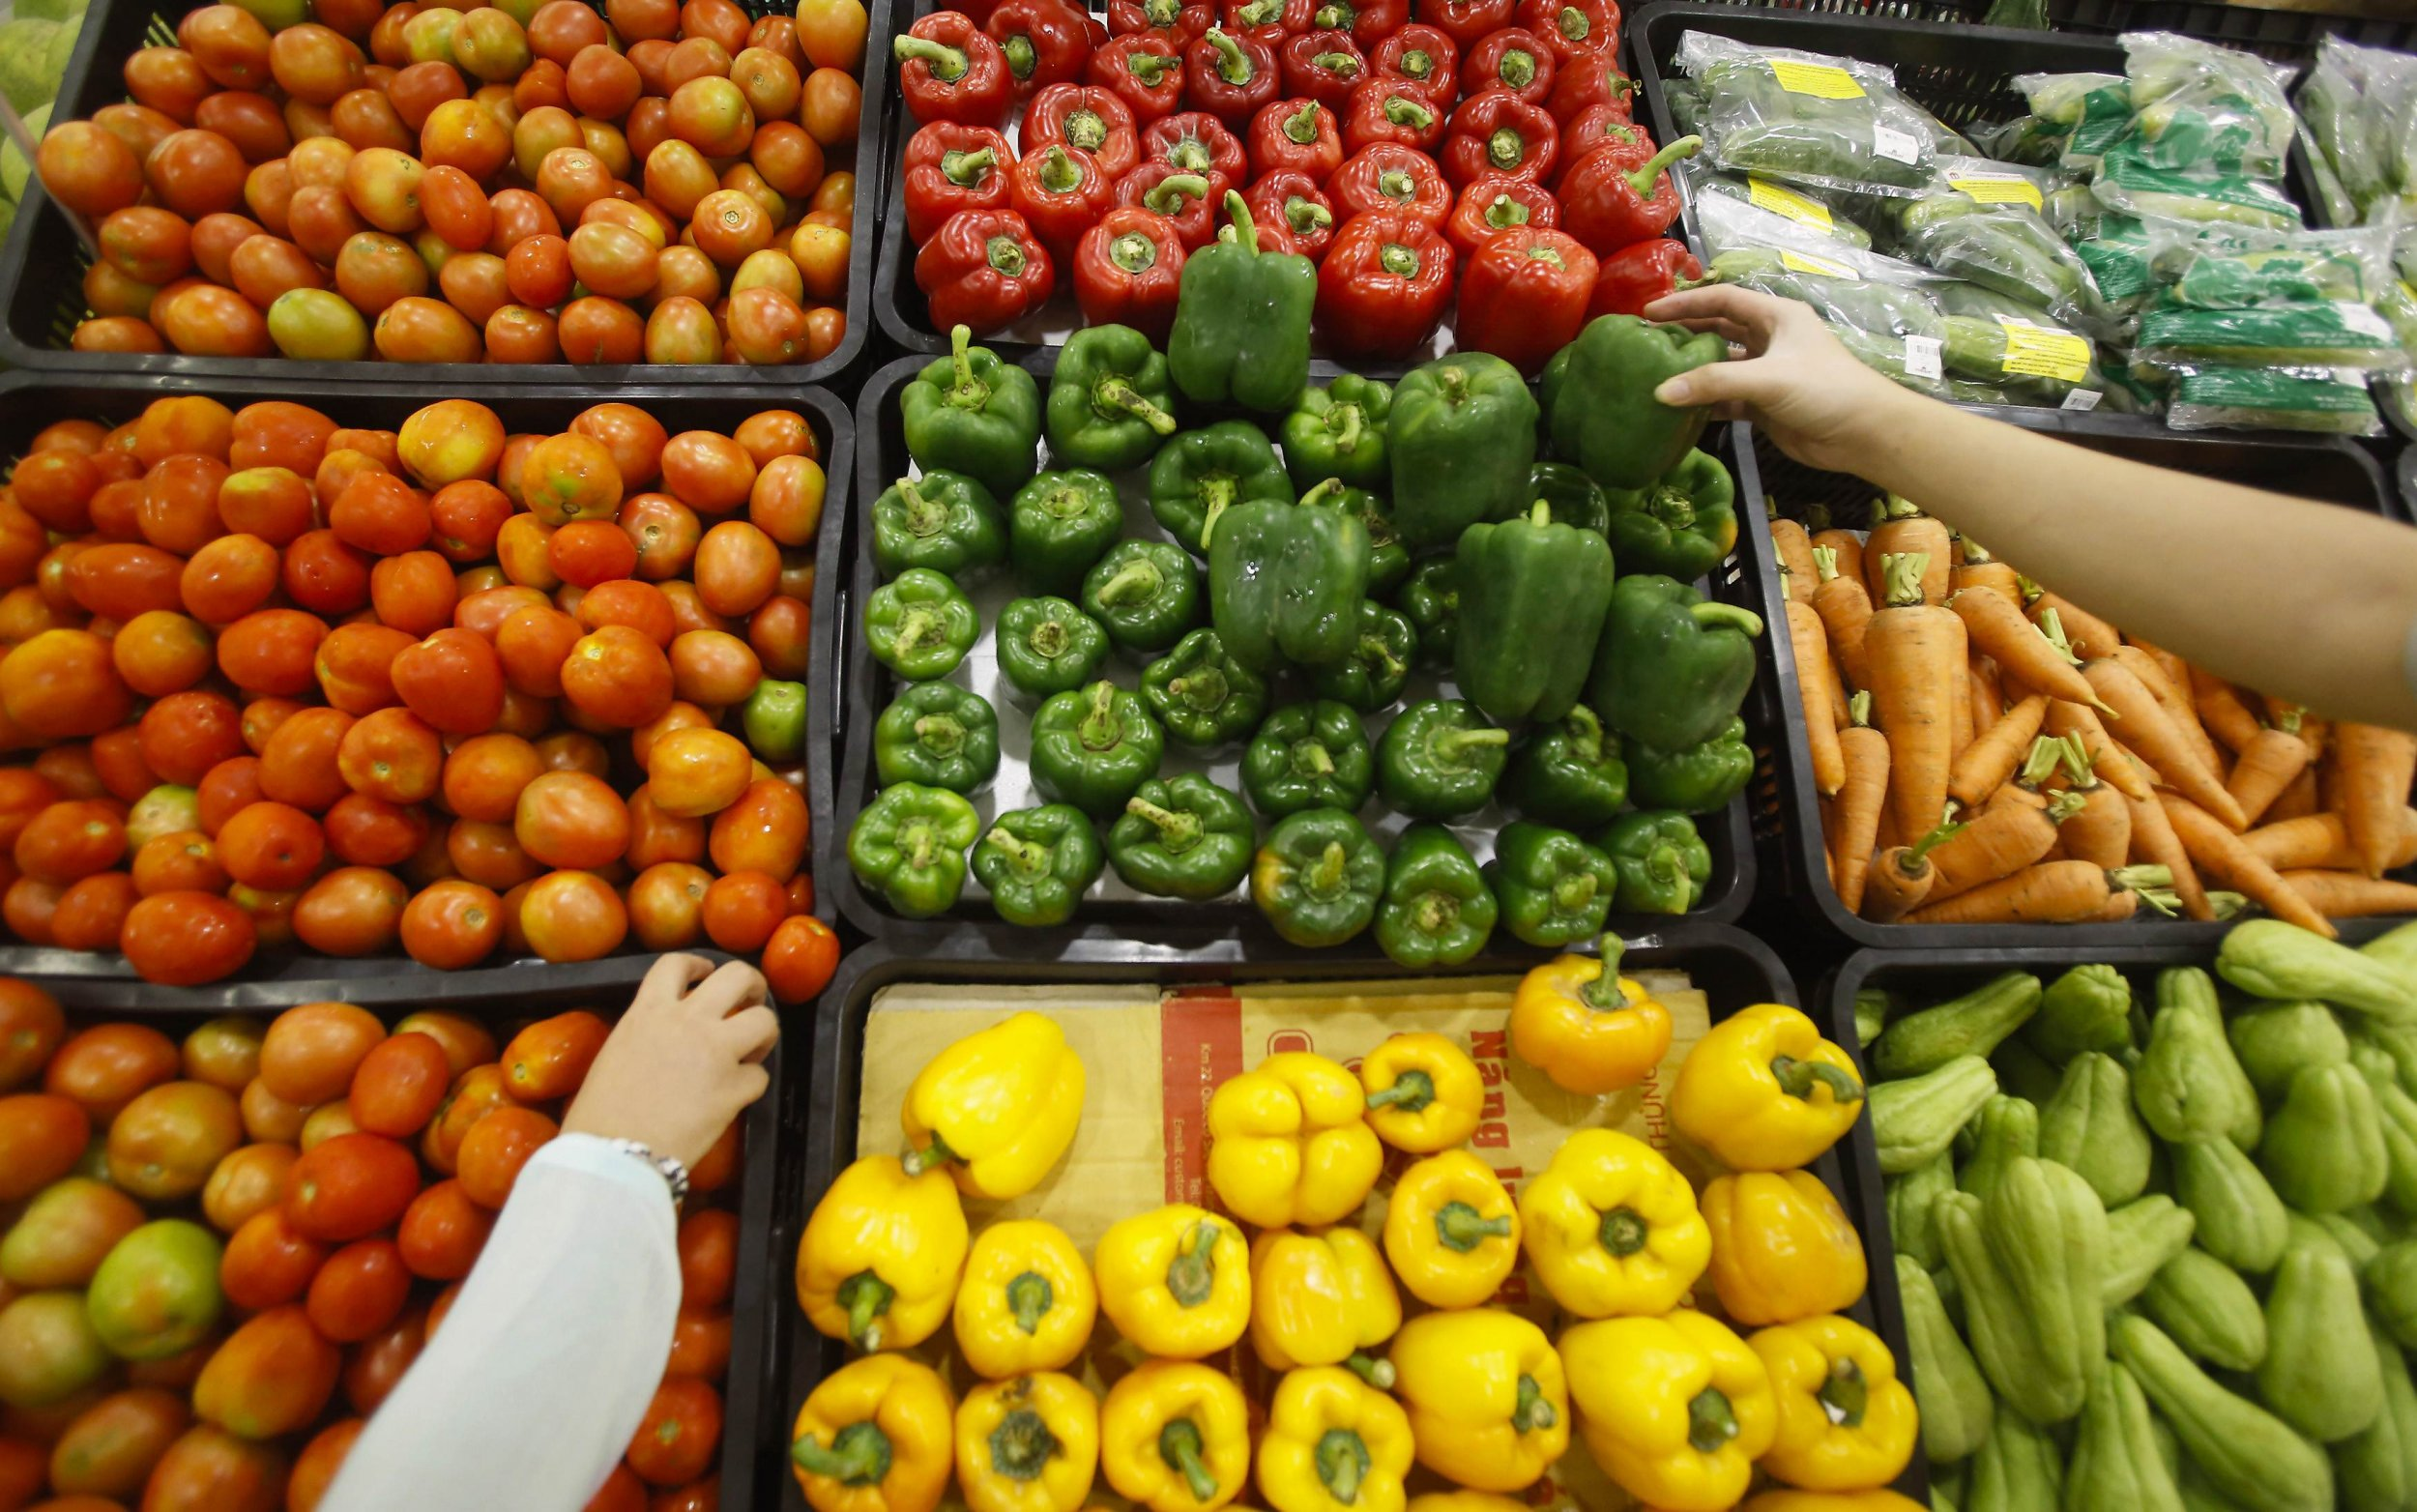 Healthy Food Is Growing More Expensive than Unhealthy Food: Study